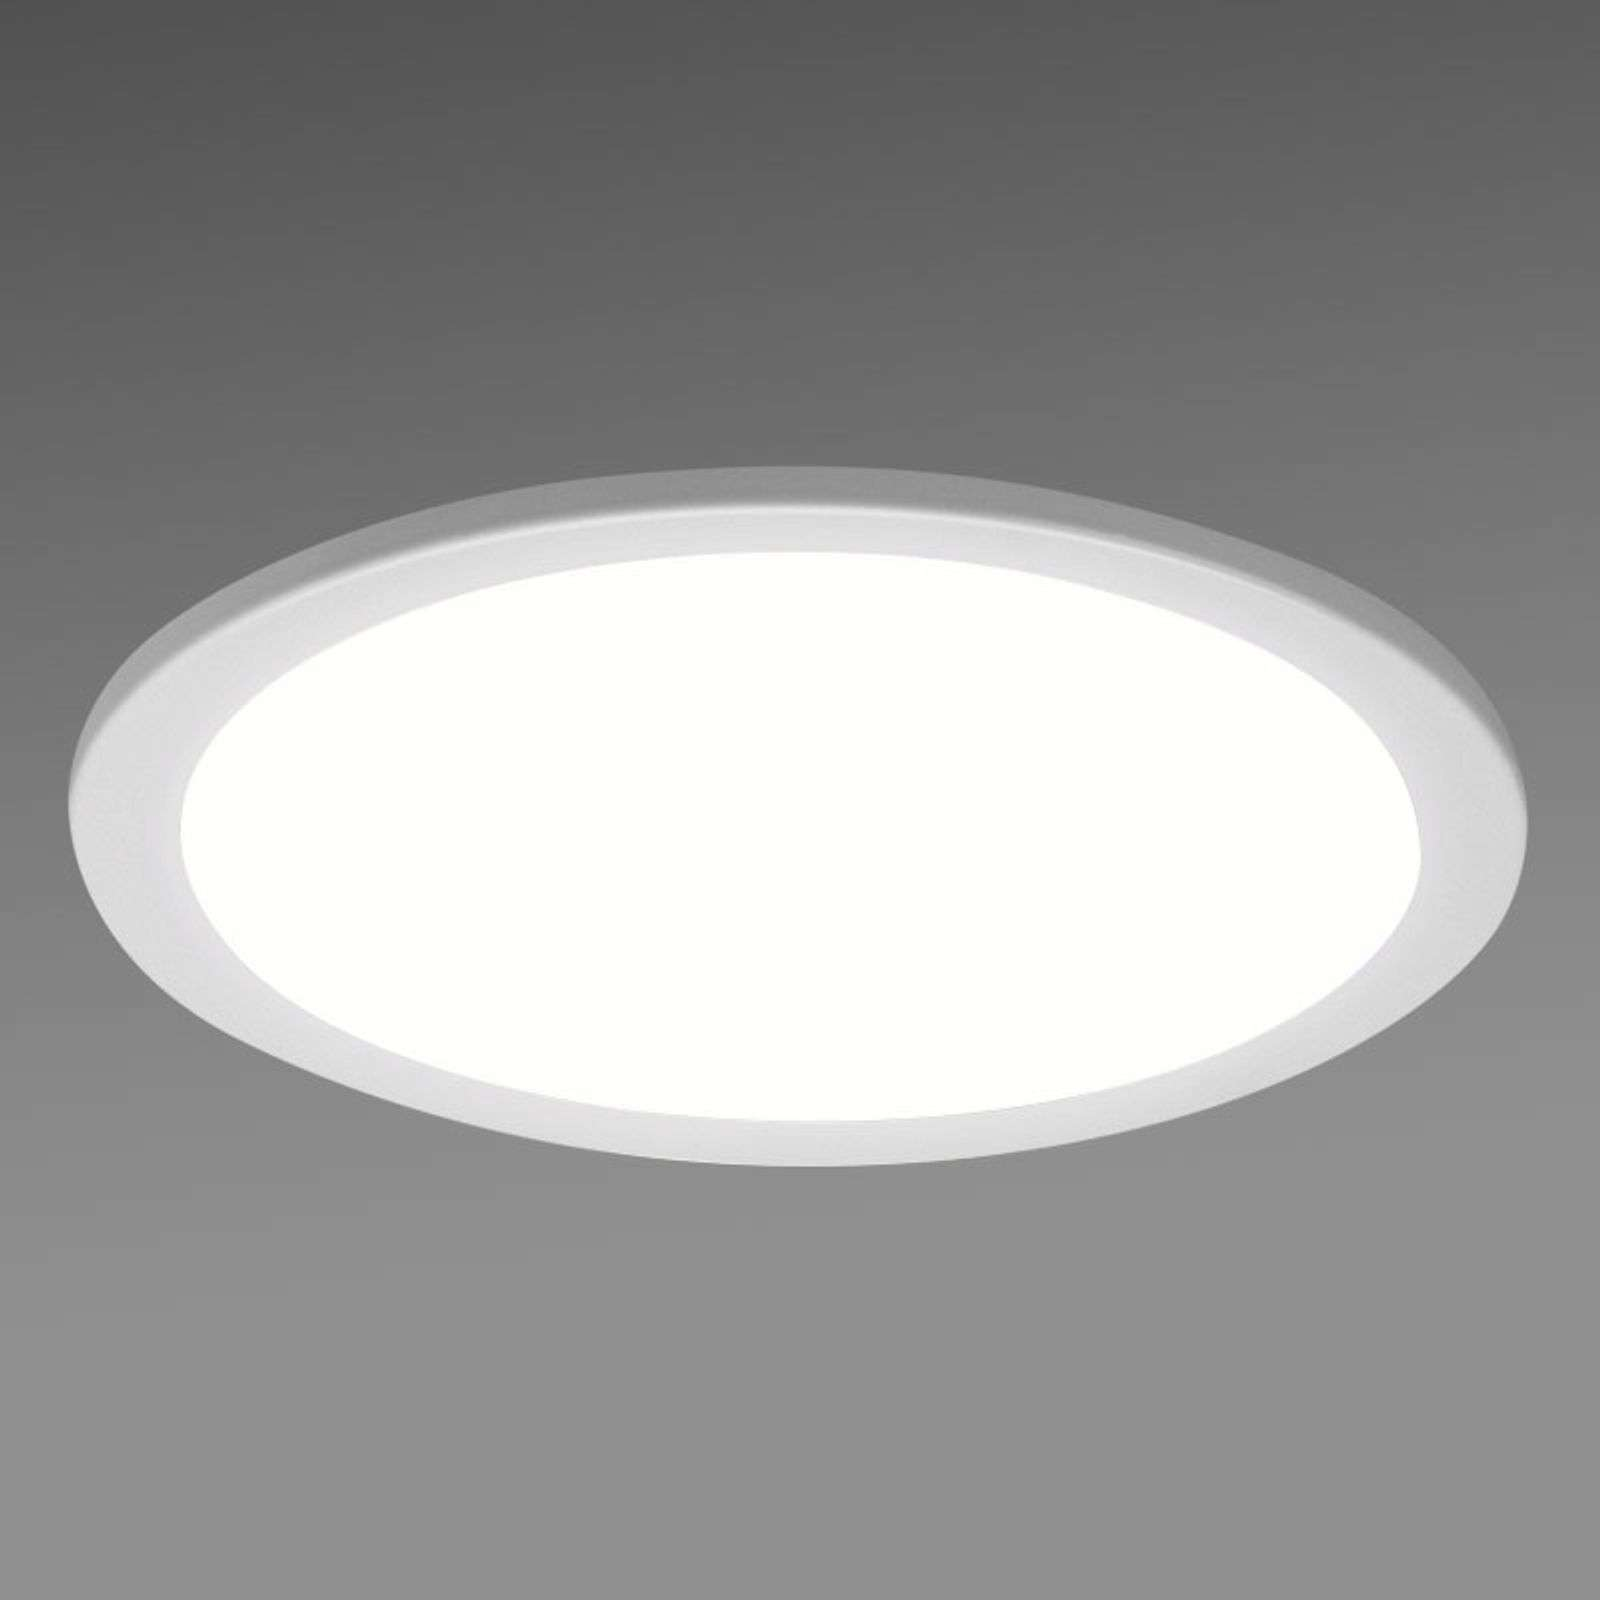 Downlight encastrable LED SBLG rond, 4 000 K